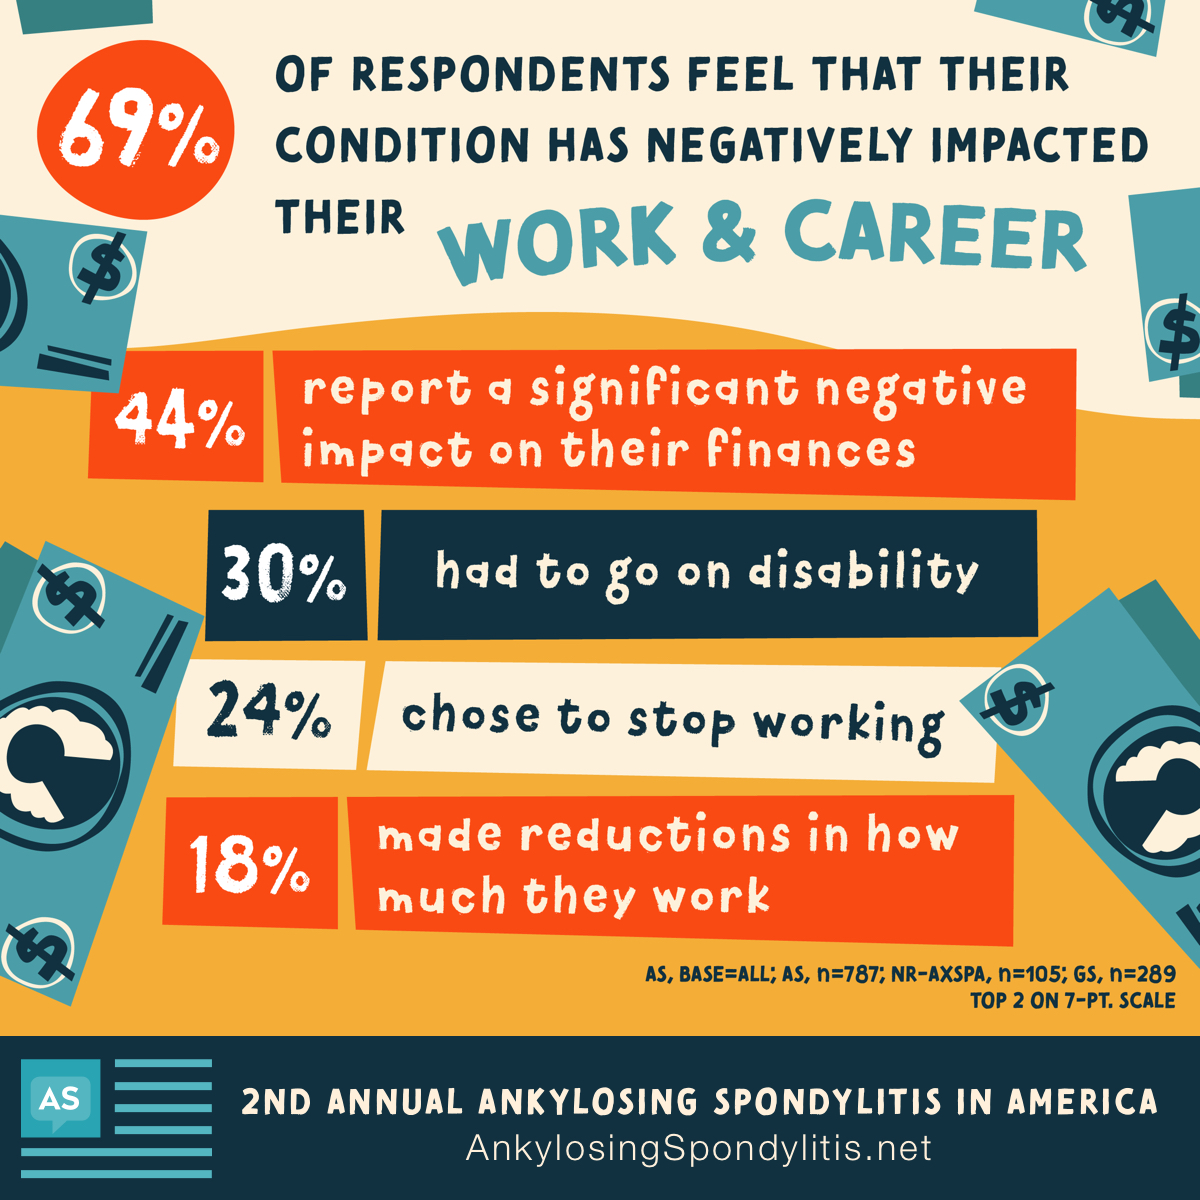 Data shows that 69% of respondents feel that their condition has negatively impacted their work and career, and 44% report a significant negative impact on their finances.